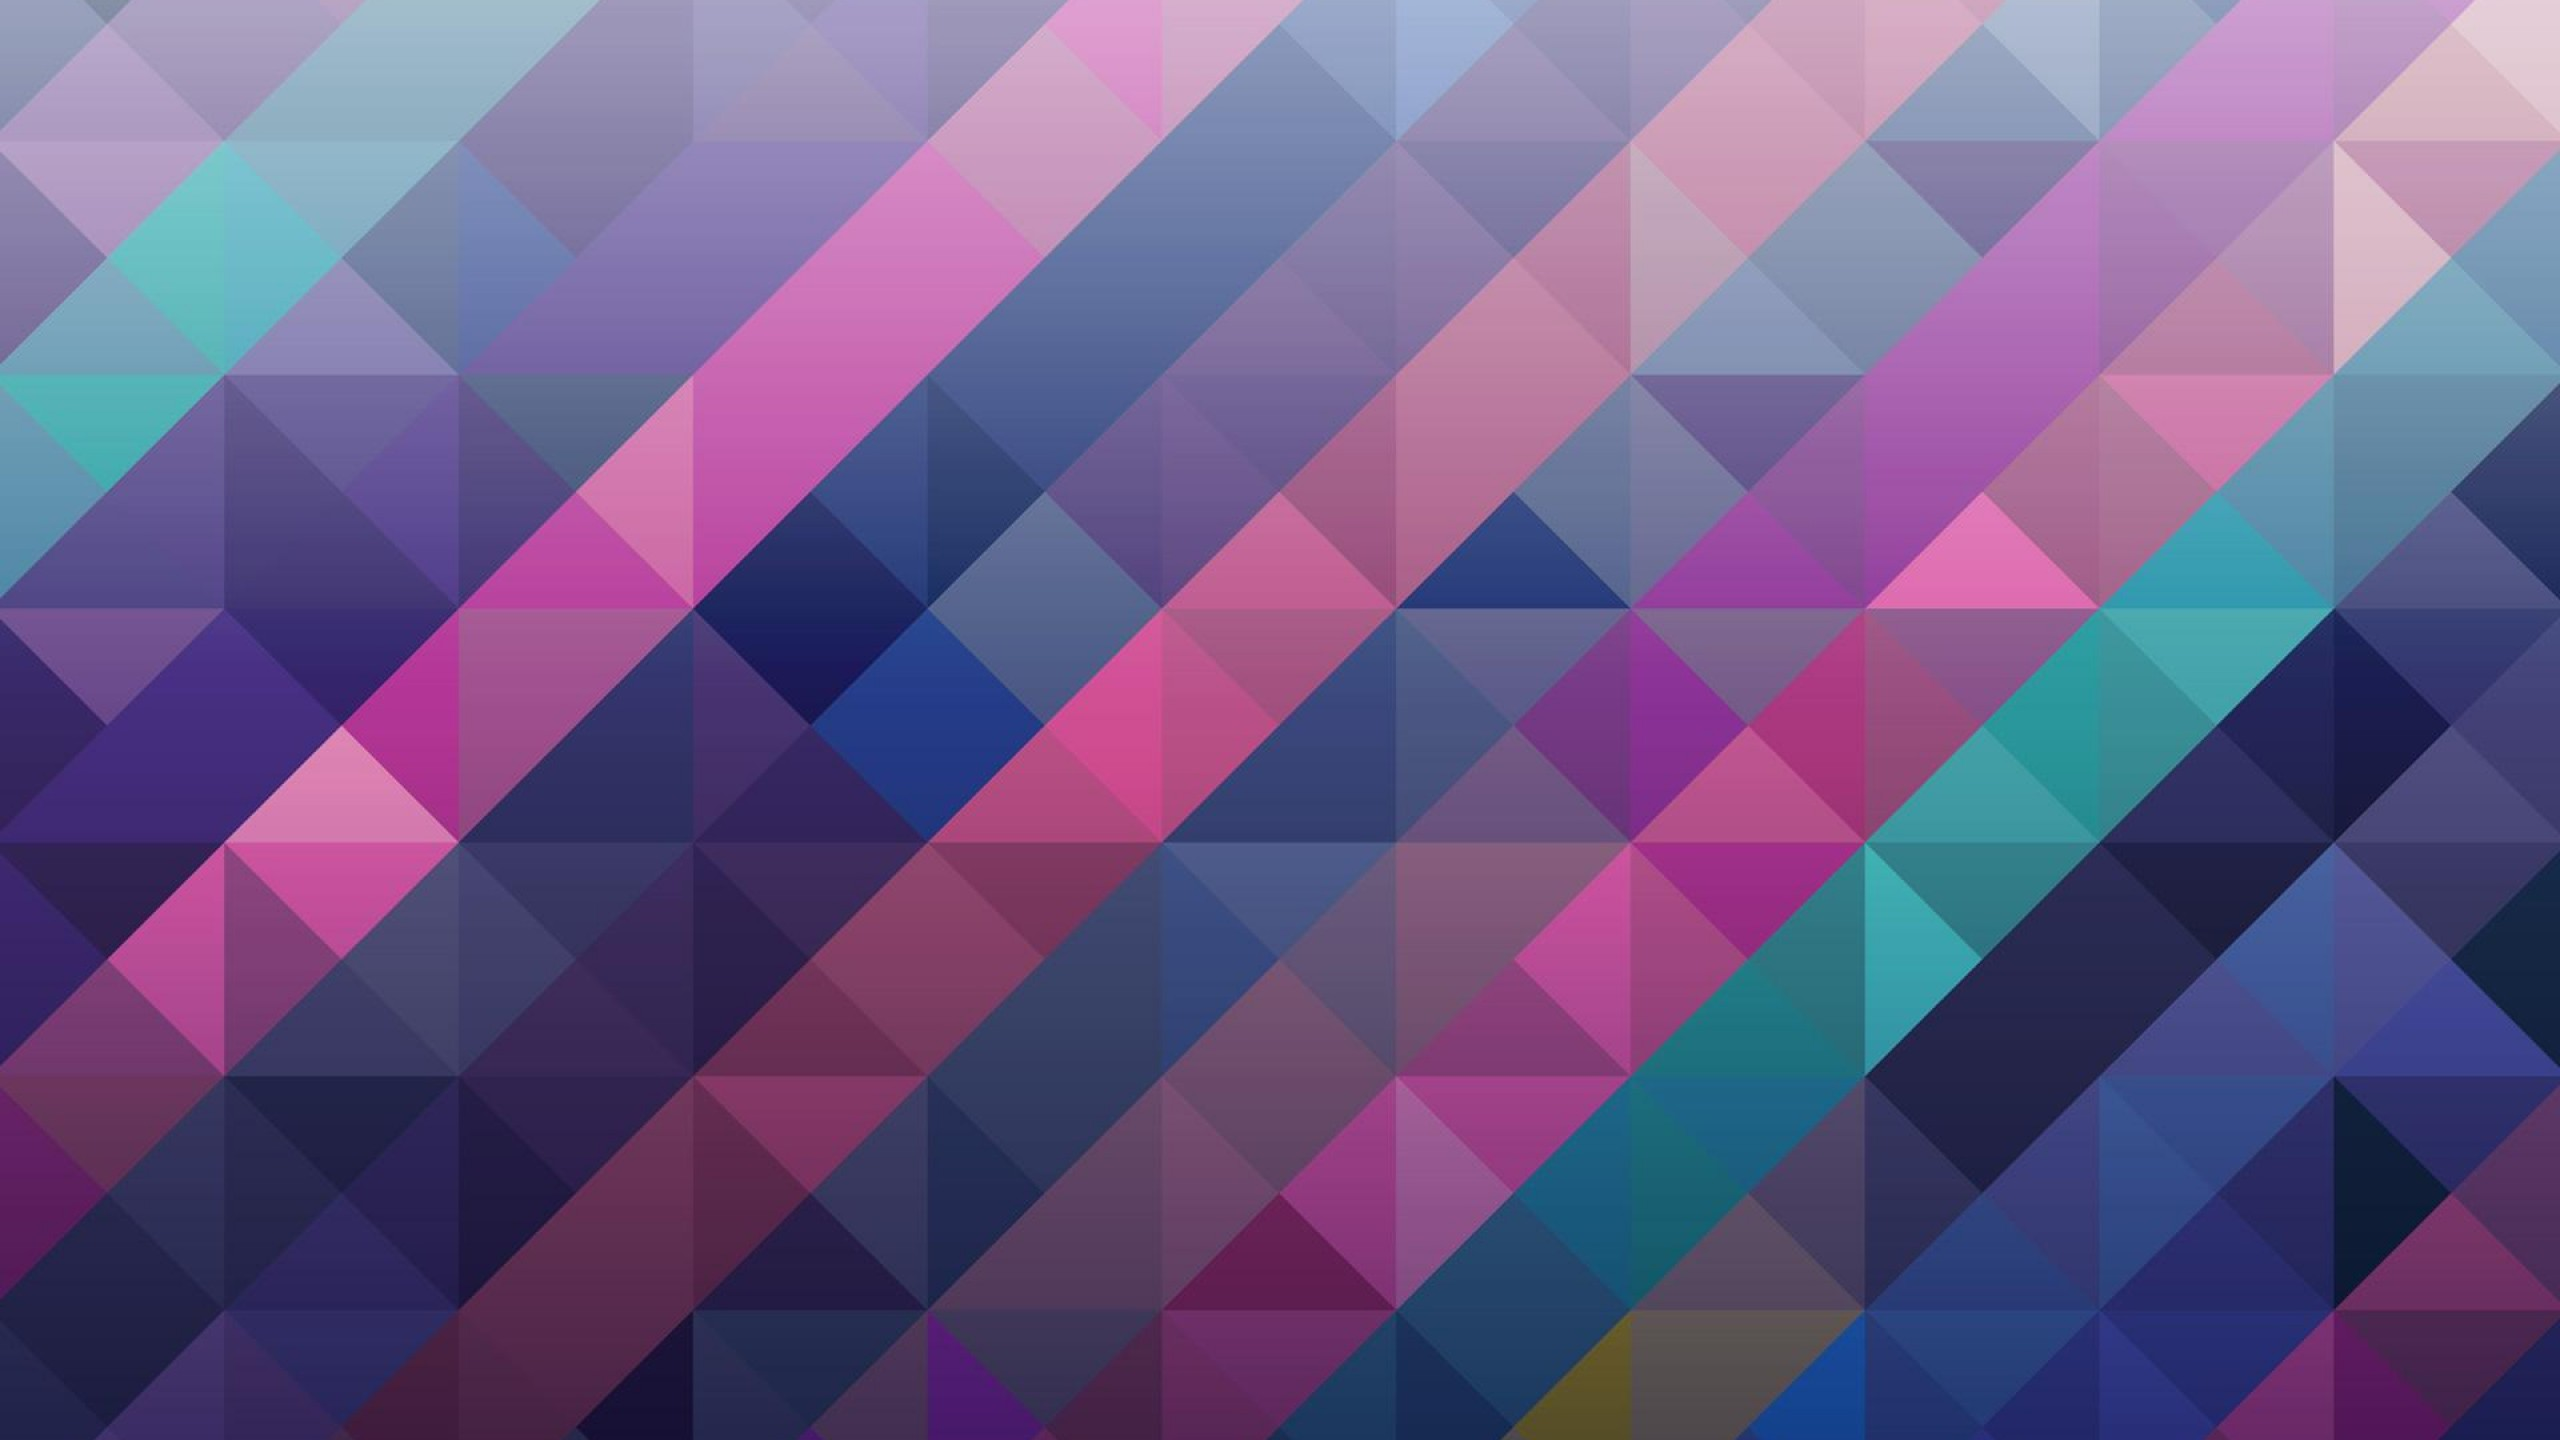 Samsung Galaxy S4 abstract wallpaper background screen 2560x1440